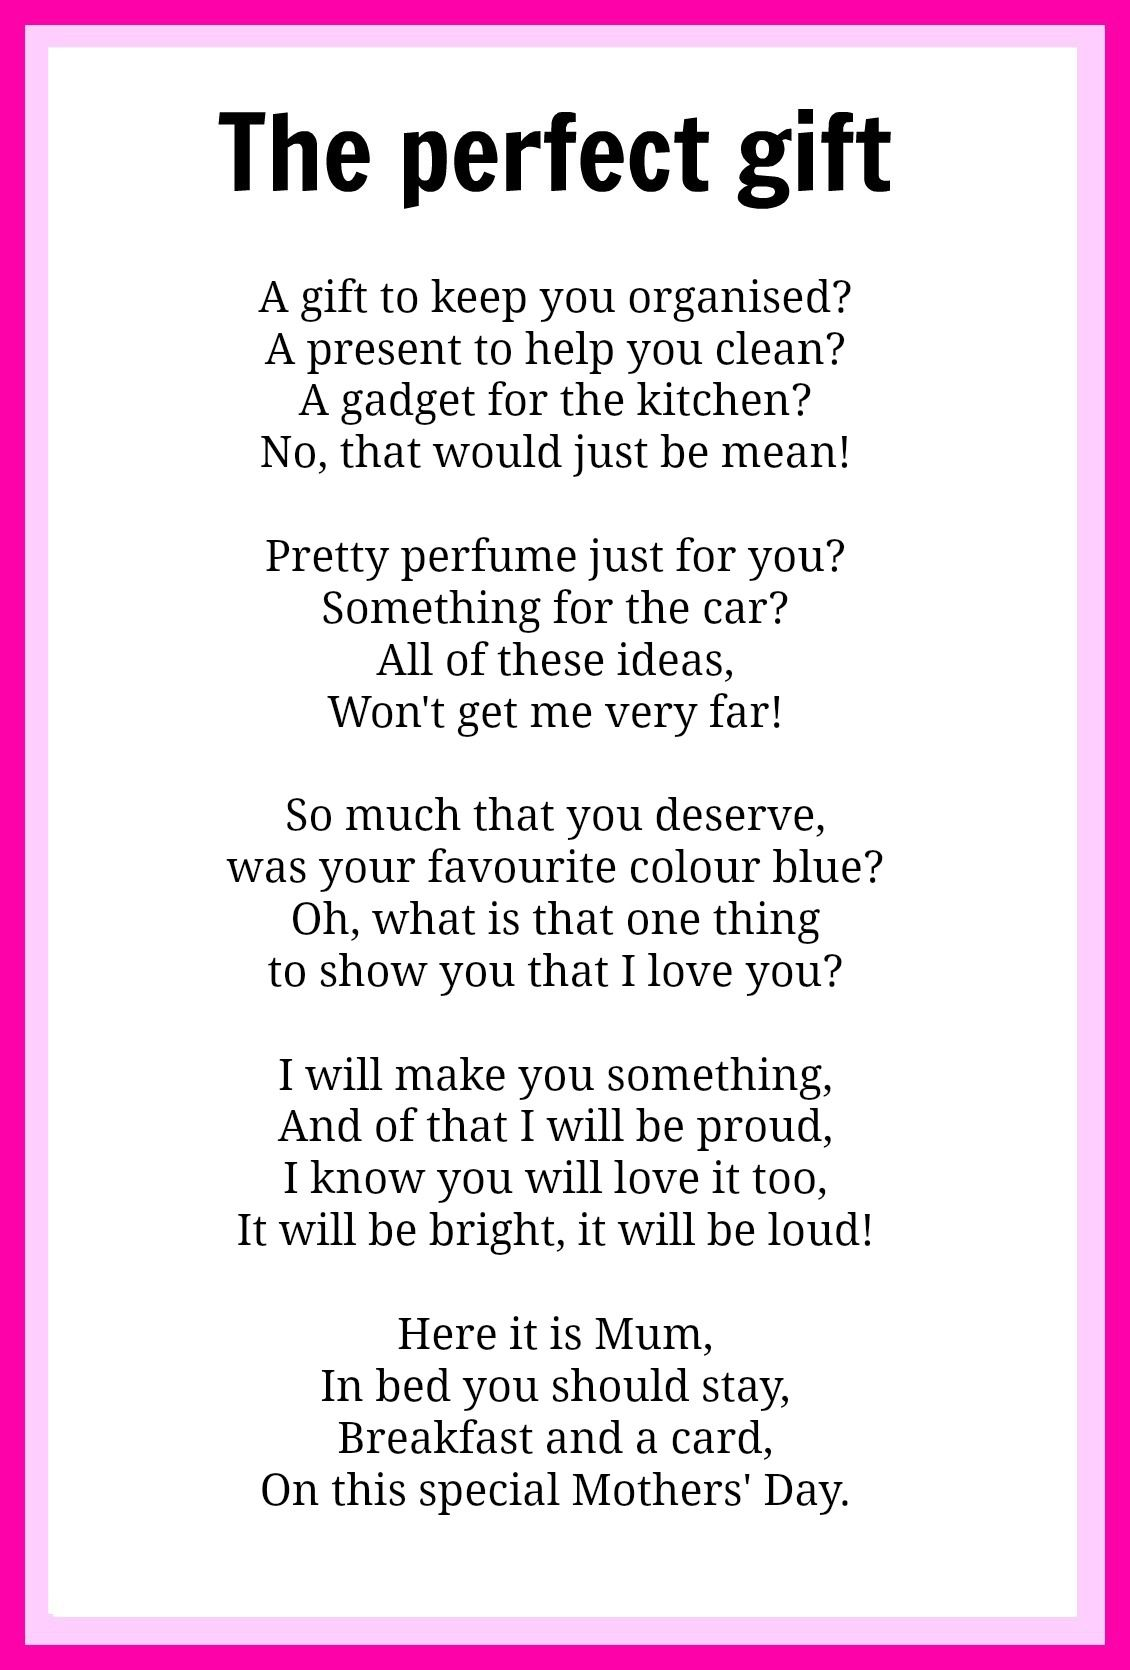 Mothers' Day poems | Poem, Gift and Craft gifts